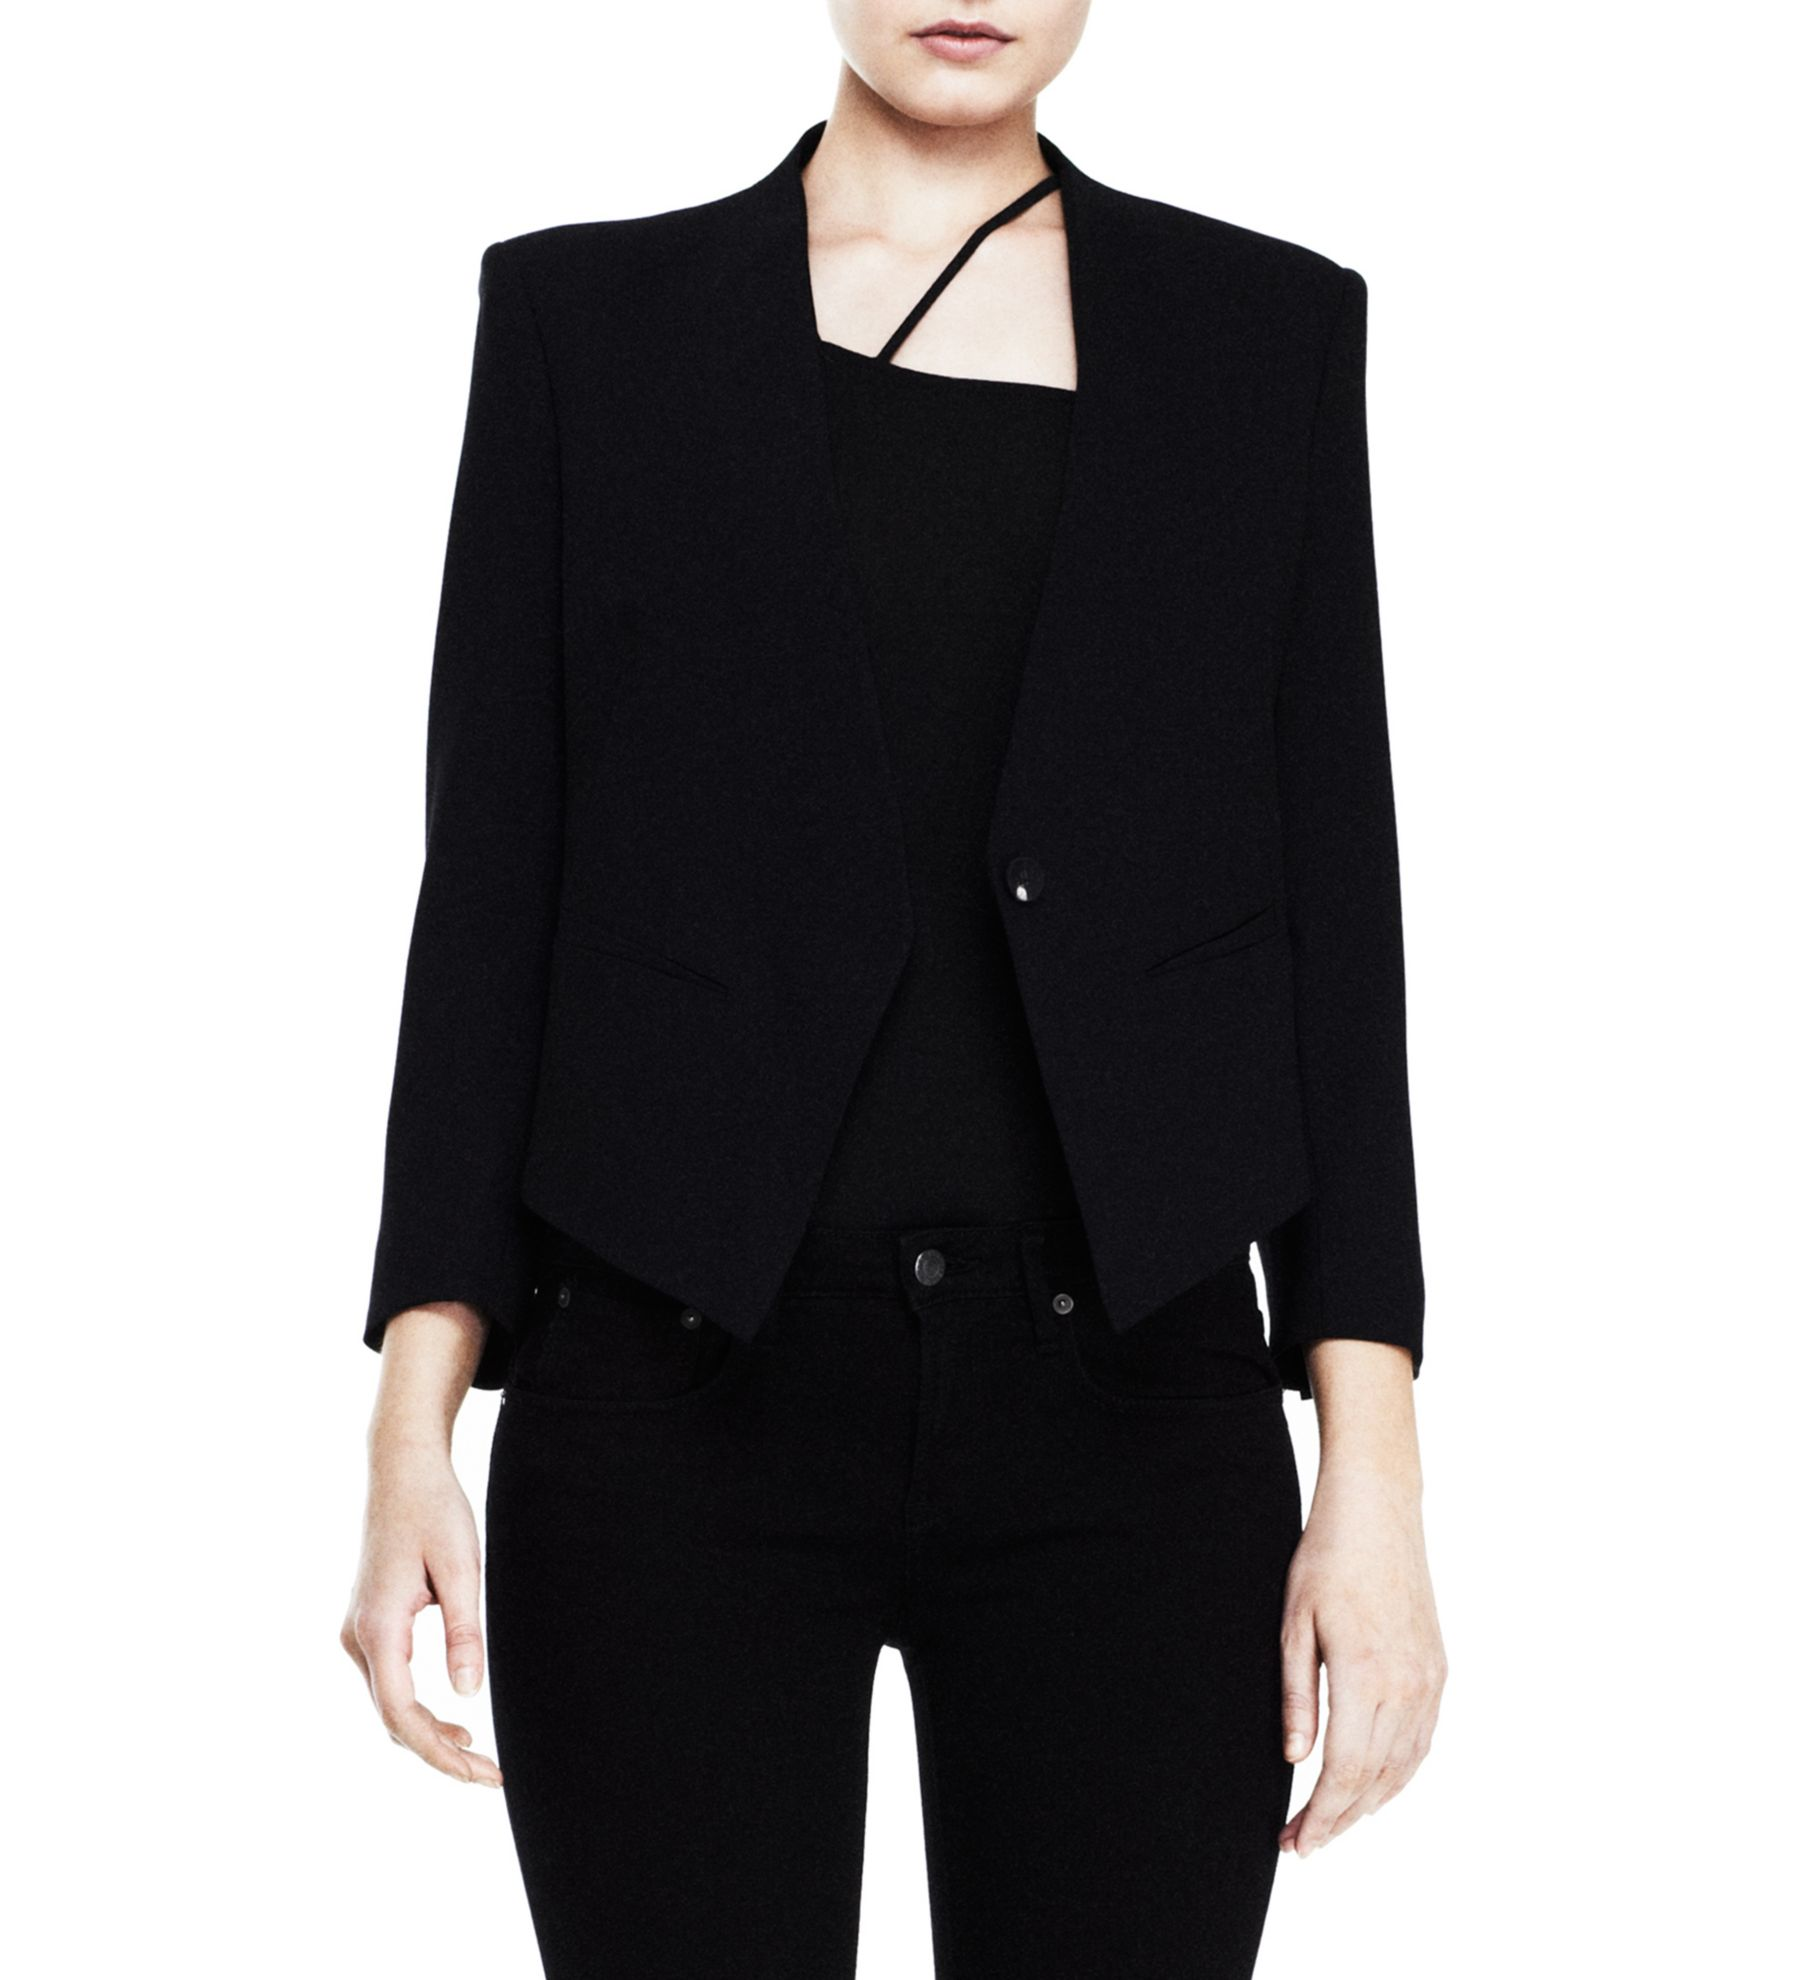 WOMEN'S JACKET - SMOKING WOOL TUXEDO BLAZER - HELMUTLANG.COM